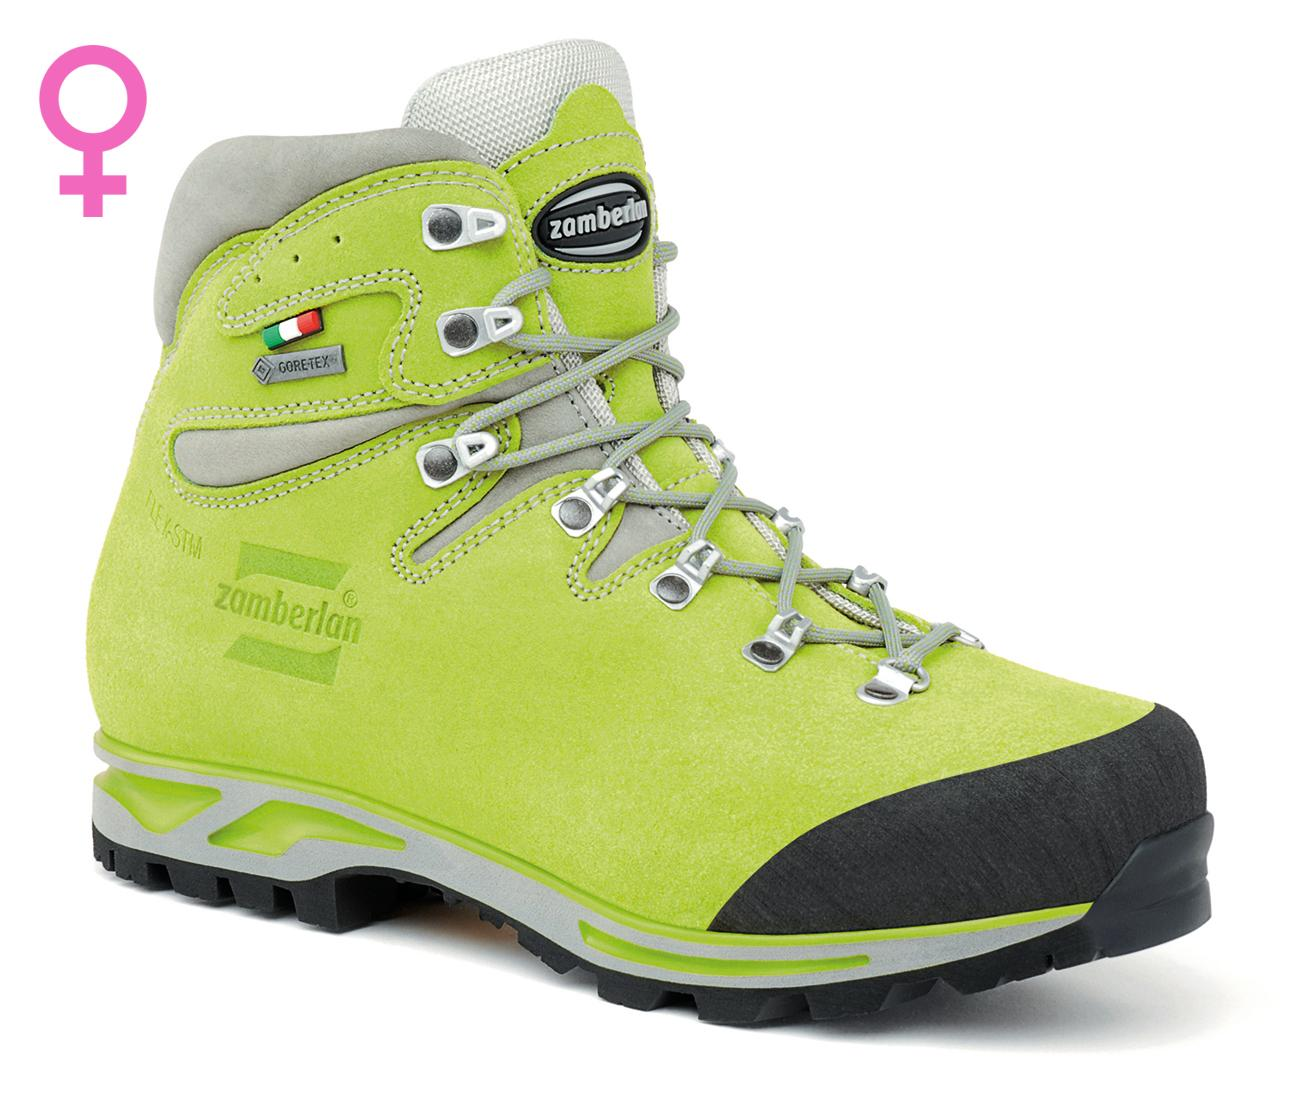 900 ROLLE GTX WNS   -   Scarpe Hiking   -   Acid Green/Grey